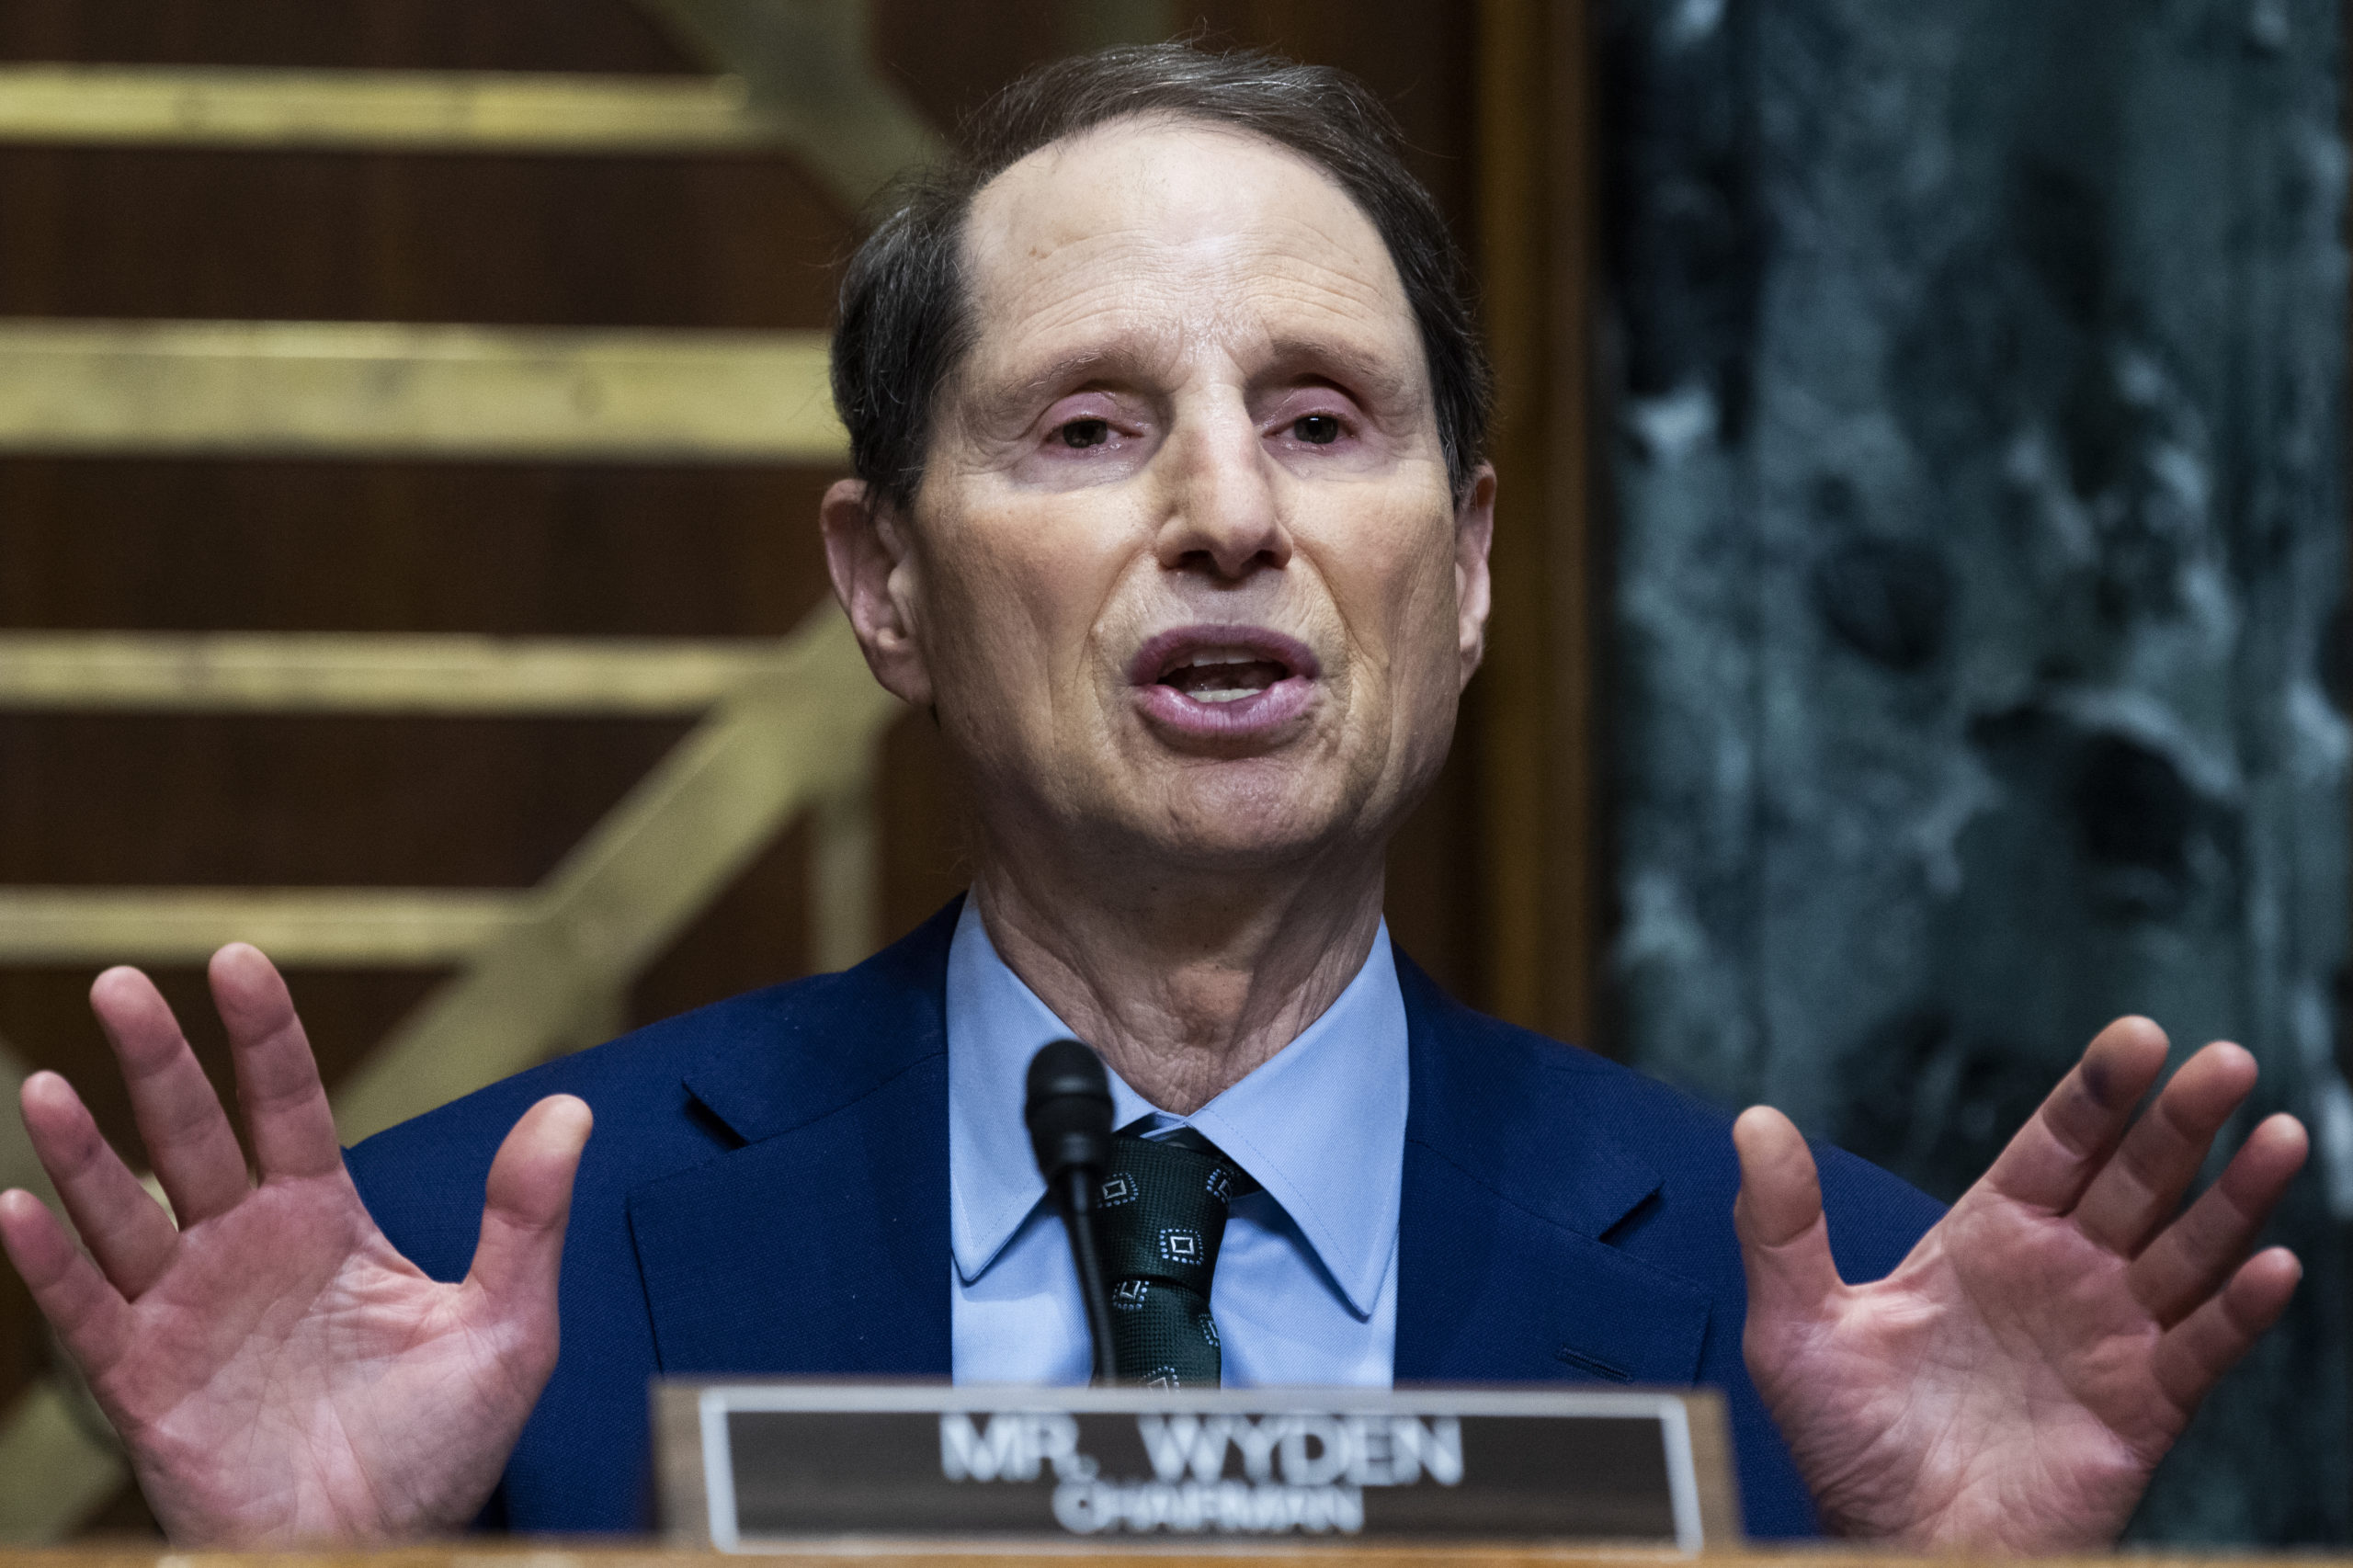 Senate Finance Committee Chairman Ron Wyden speaks during a June 8 hearing. (Tom Williams/Pool/Getty Images)